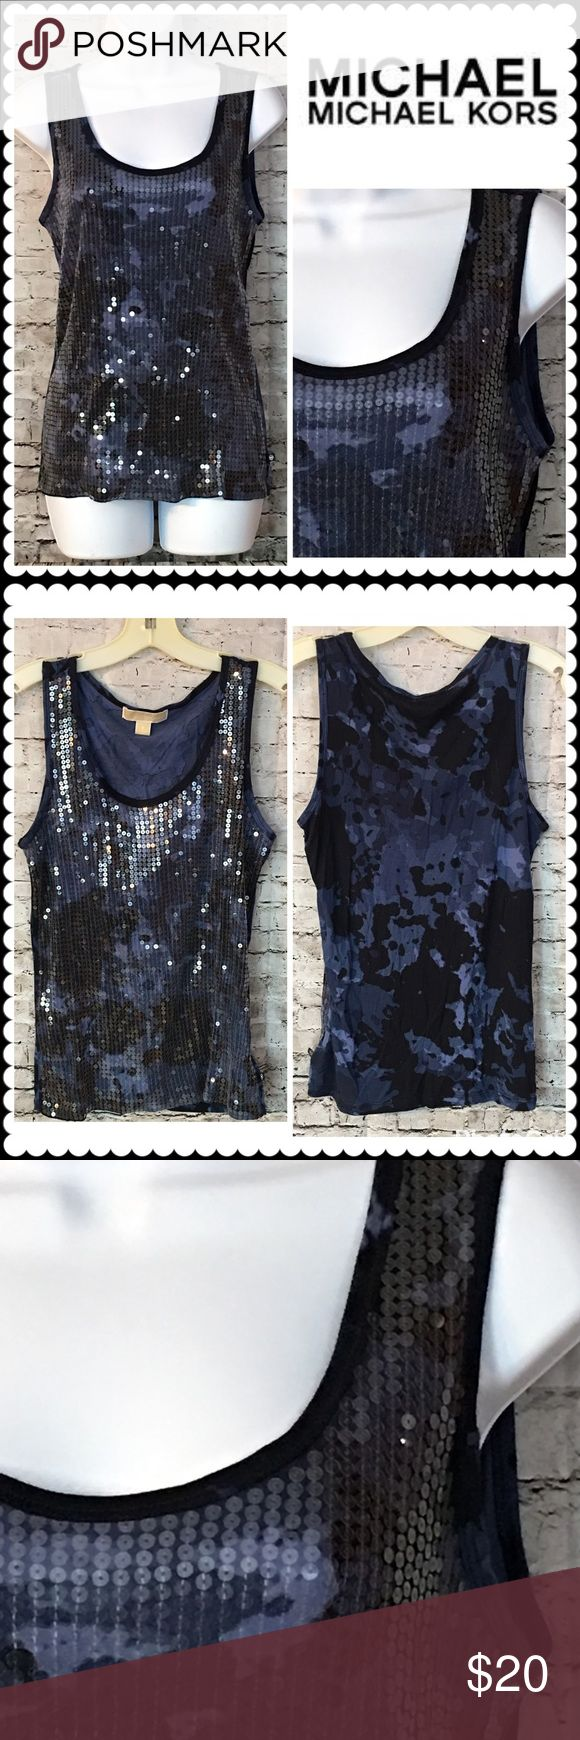 Blue print Sequin Tank Top by MICHAEL KORS Sz S Blue Camo print tank top. Front is Fully sequined. Sz Small KORS Michael Kors Tops Tank Tops